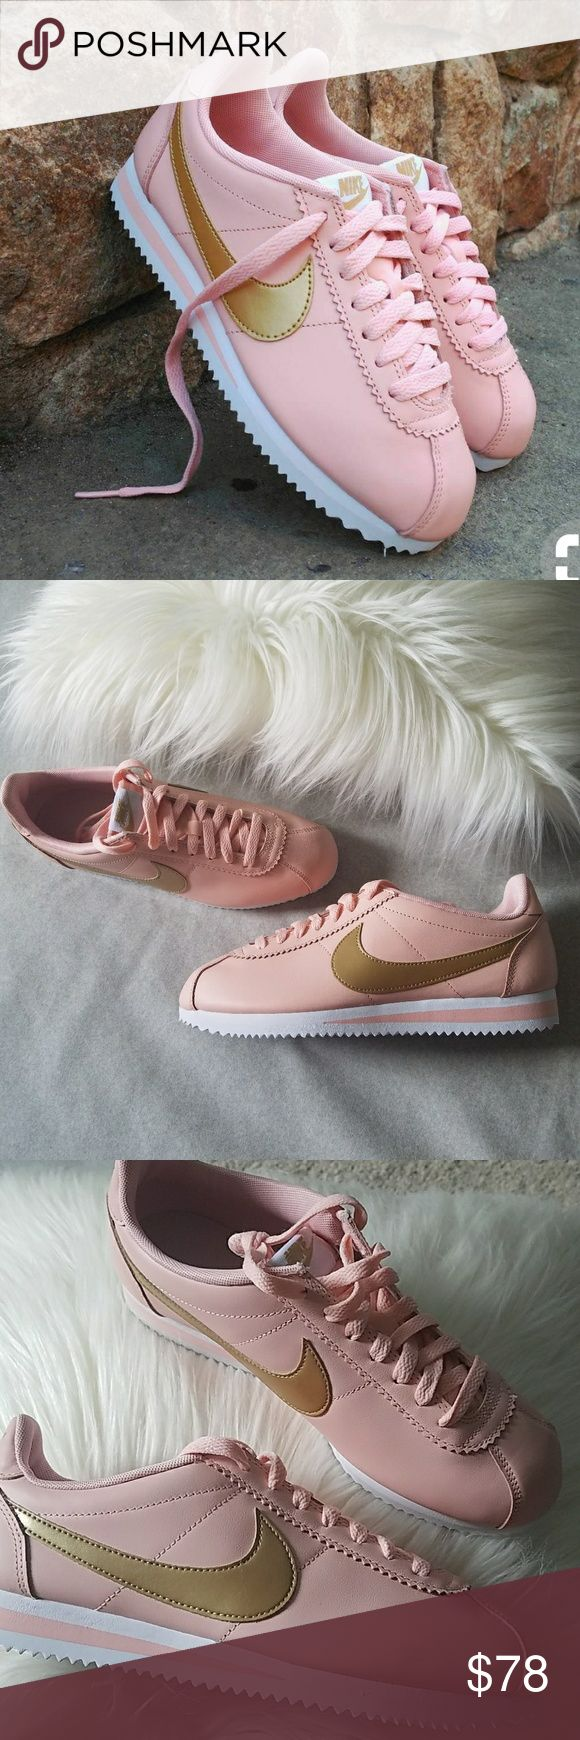 Nike Cortez Trainer in Dusty Pink and Gold New without box. Dusty rose pink color with gold Nike check and white accents. No trades. Nike Shoes Sneakers